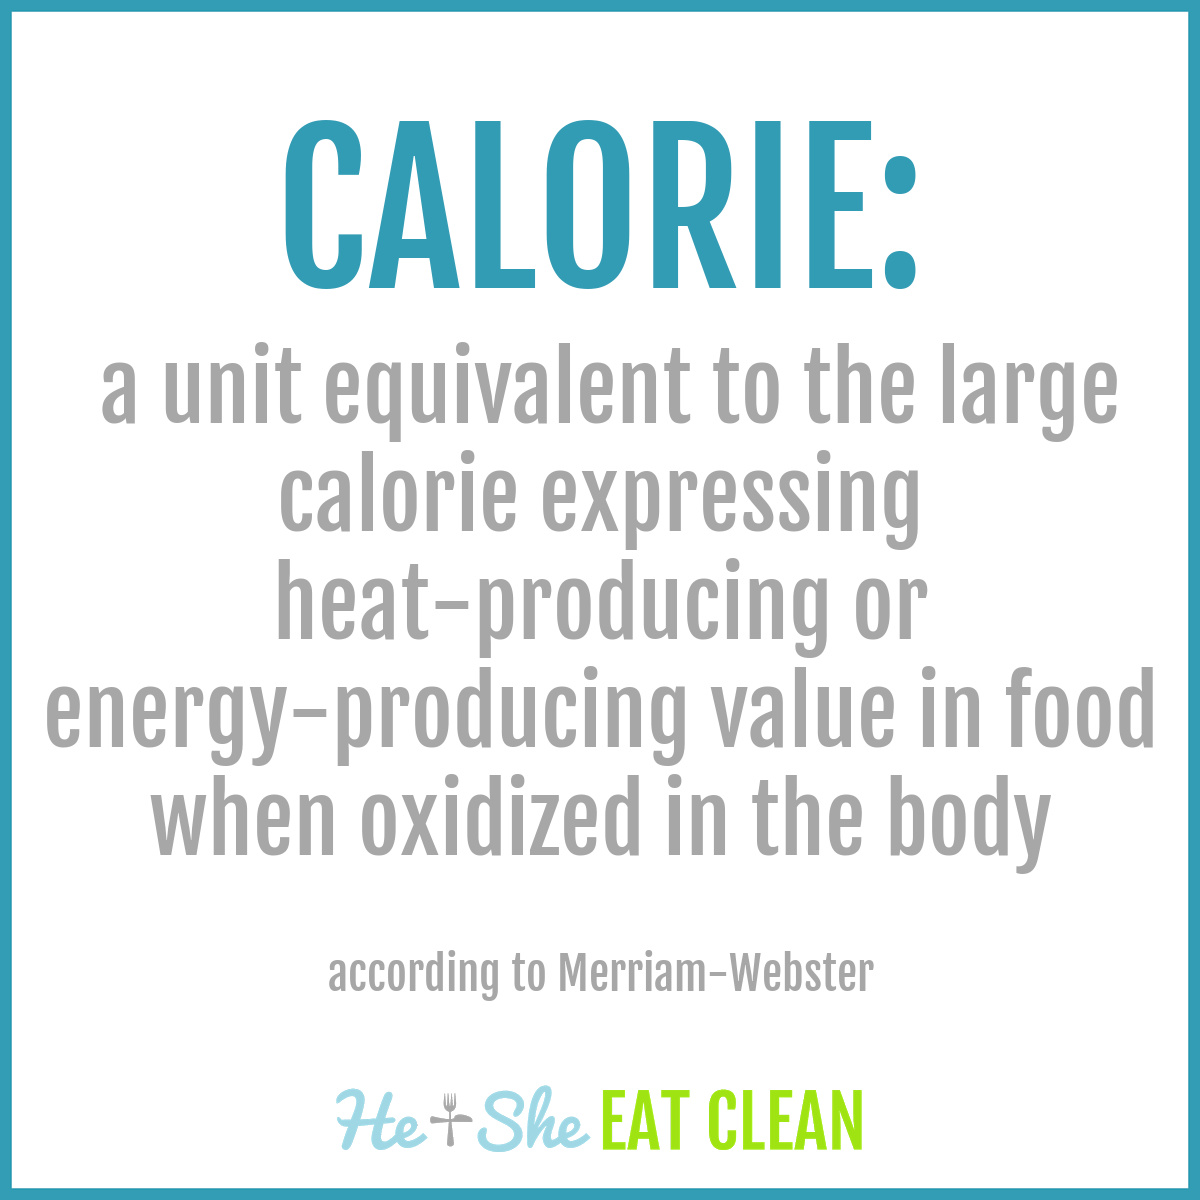 definition of a calorie: : a unit equivalent to the large calorie expressing heat-producing or energy-producing value in food when oxidized in the body